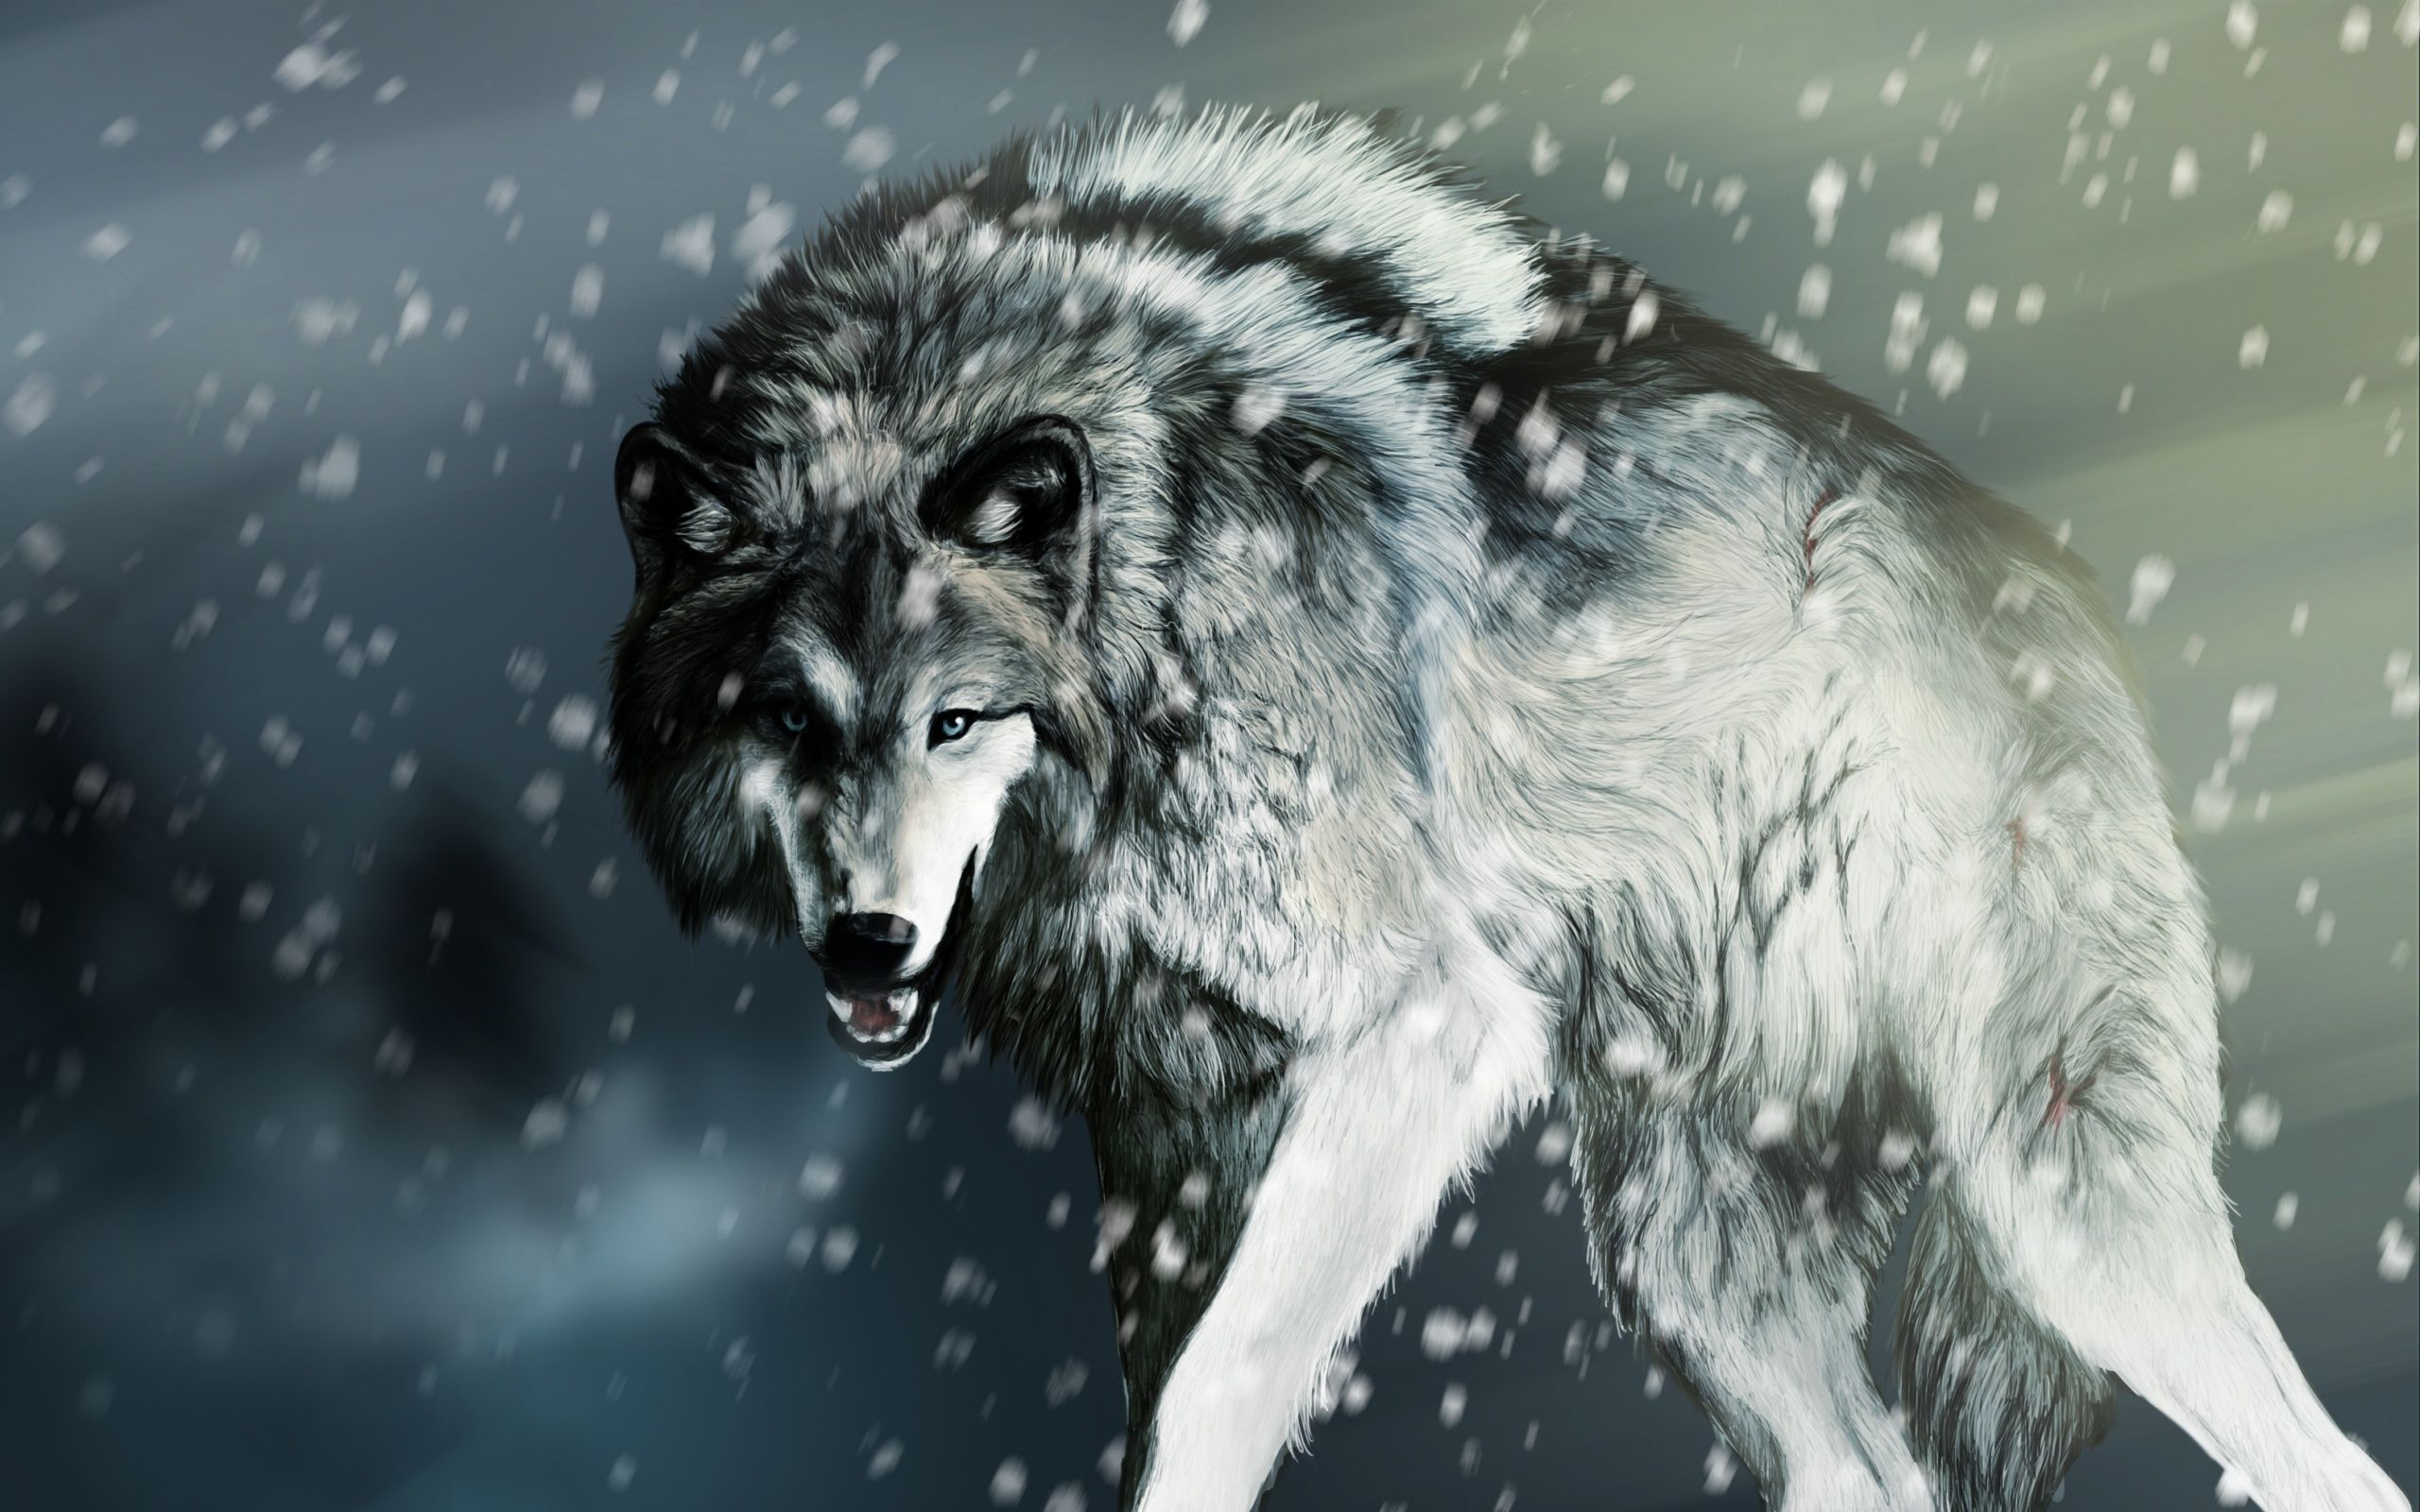 Must see Wallpaper Angry Gray Wolf - e6167732e782ed1e90fc09bc2fd08cf7  You Should Have_919338      .jpg